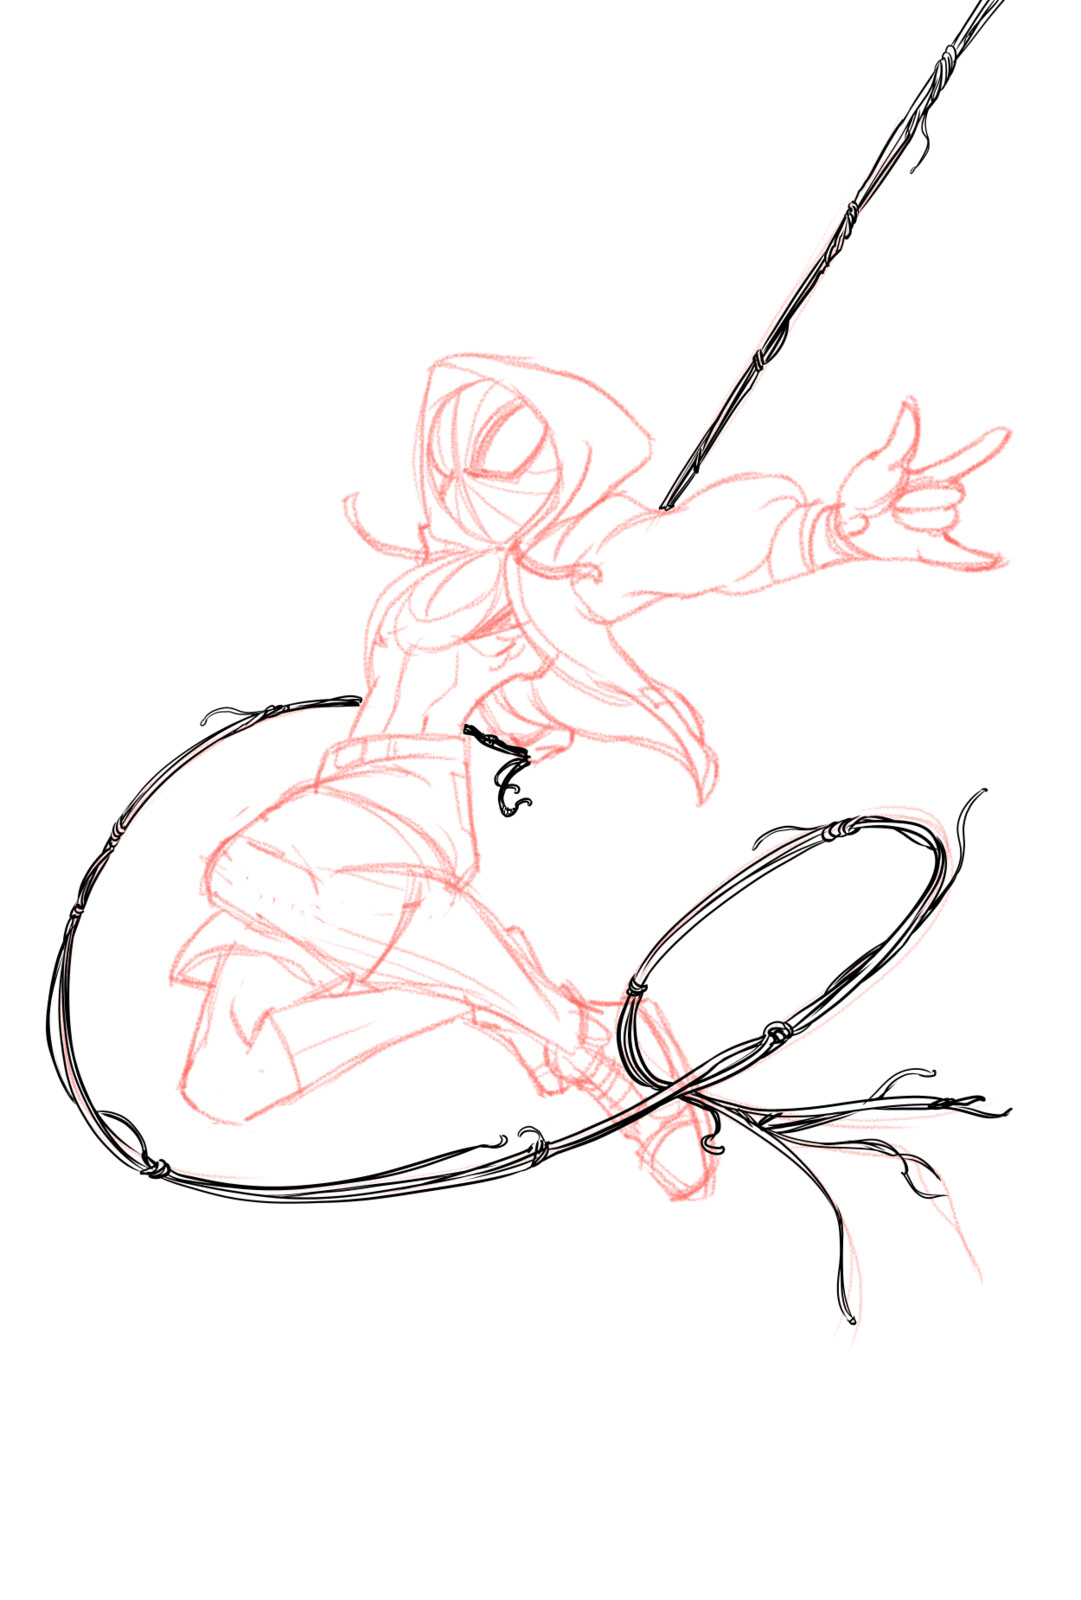 03-Inked the webbing on a separate layer